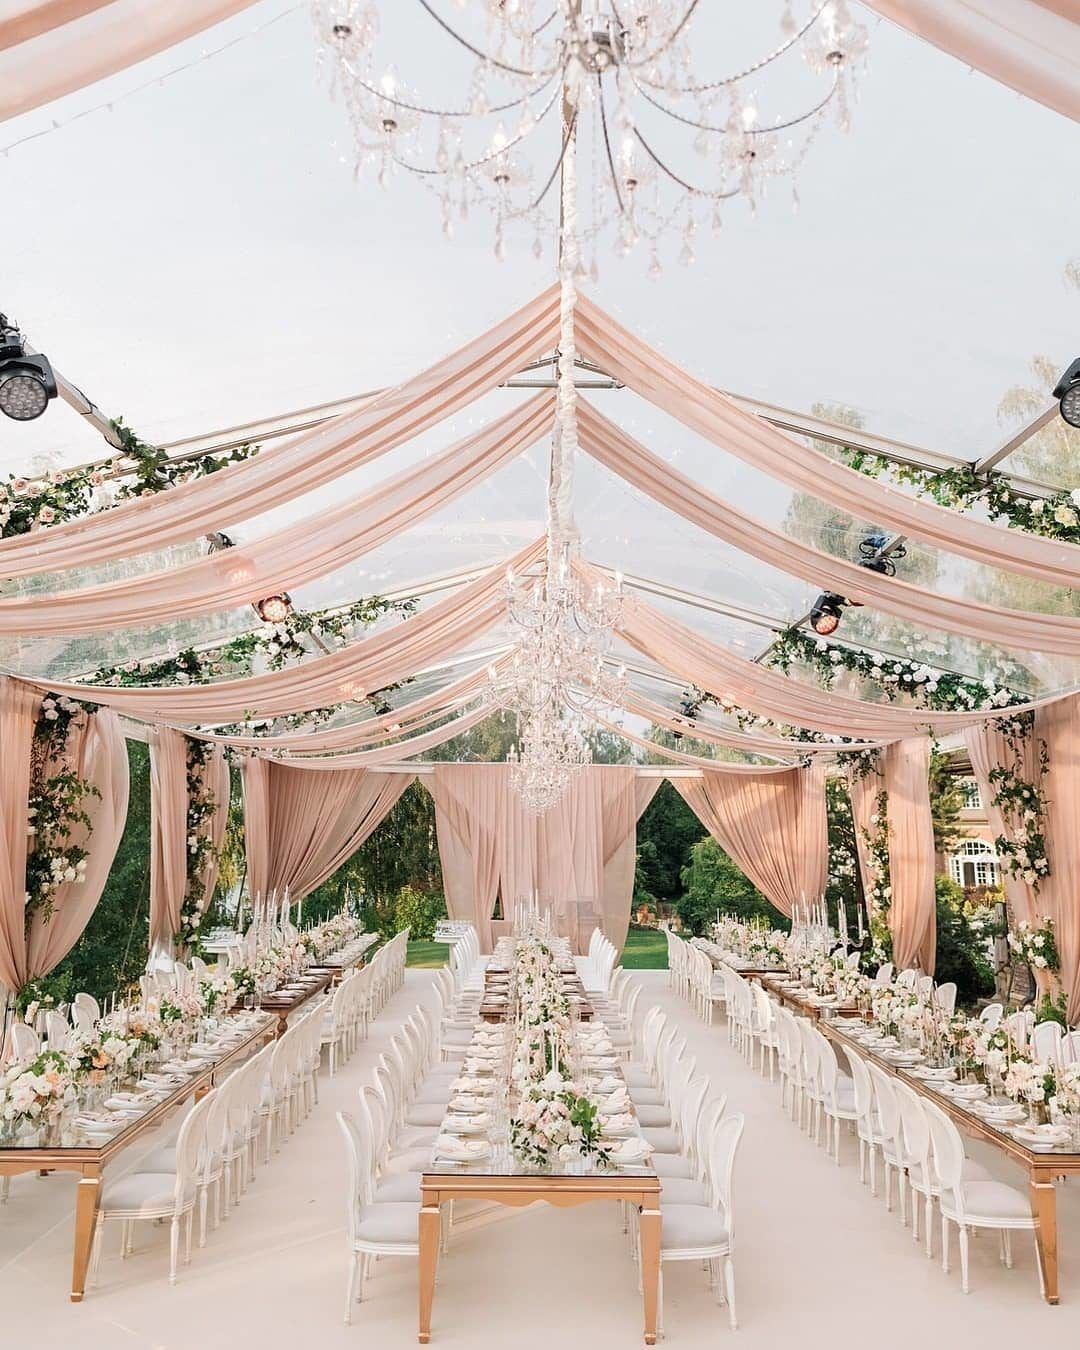 These romantic wedding drapes are giving us all the warm fuzzies with their whimsical…